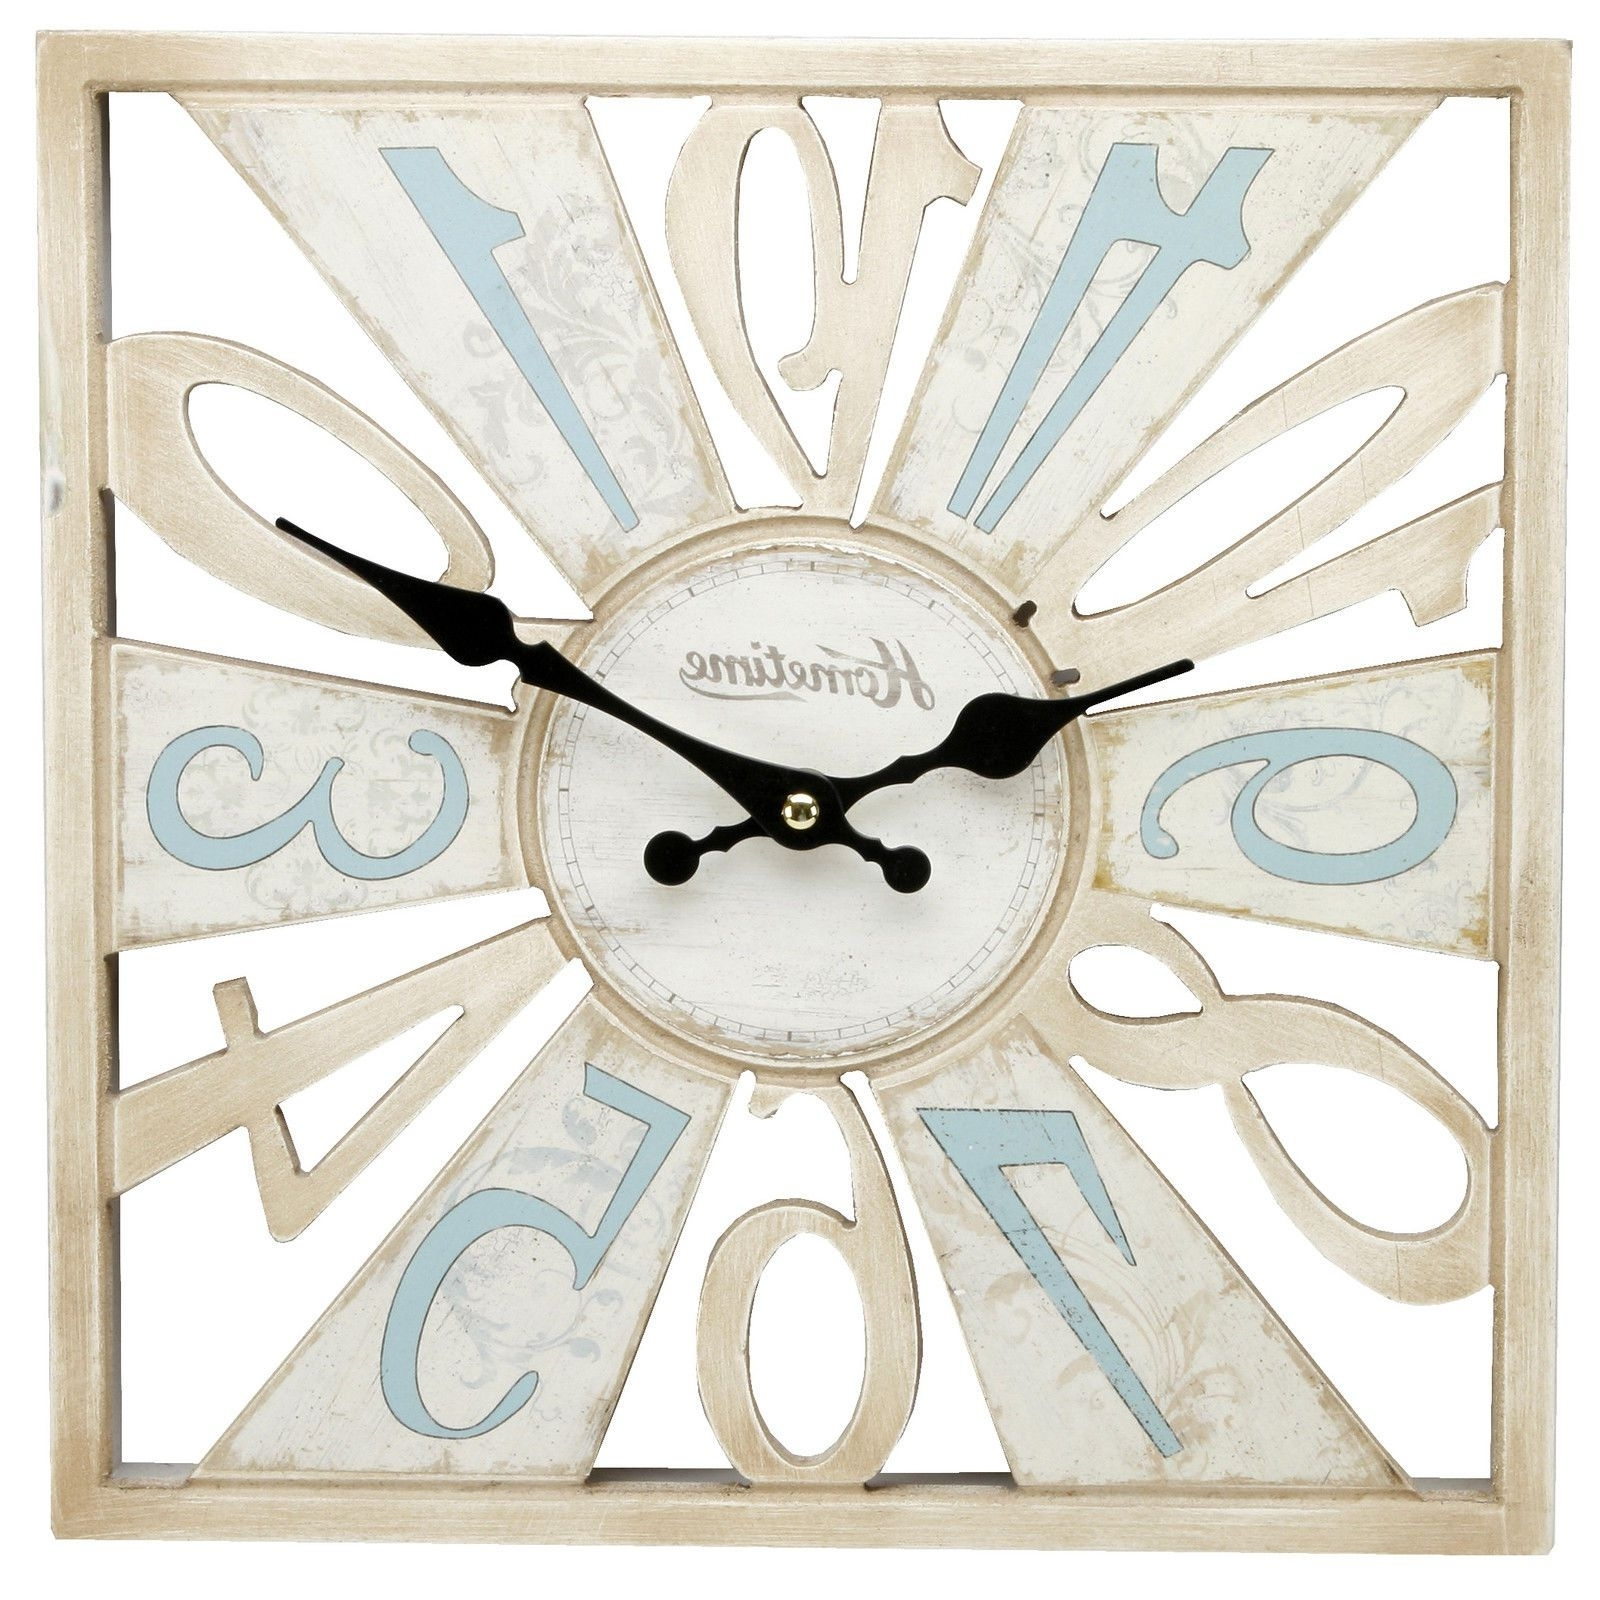 Newest Cut Out Wooden Wall Clock Duck Egg Blue & Cream Shabby Chic Wall With Duck Egg Blue Wall Art (View 12 of 15)